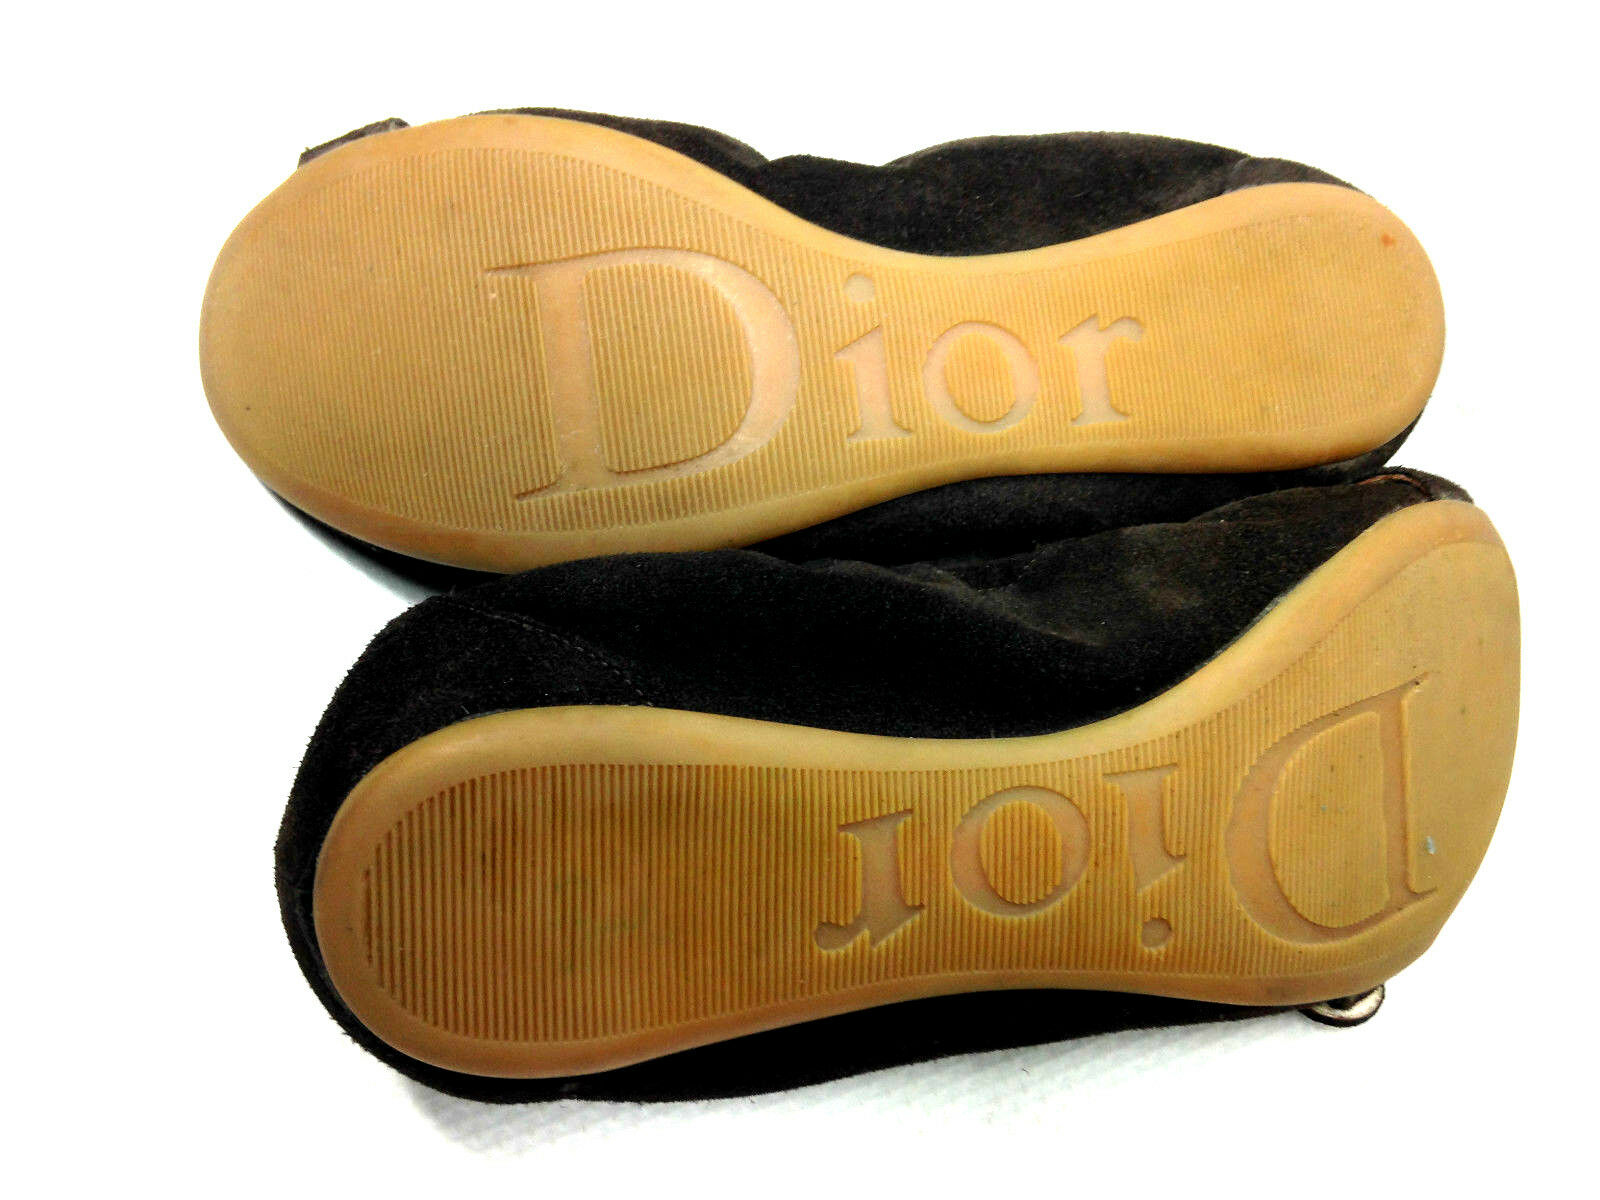 Dior Flat Casual Brow US.6-6.5 Suede Woman's Shoes Size US.6-6.5 Brow EU.36.5 a67788